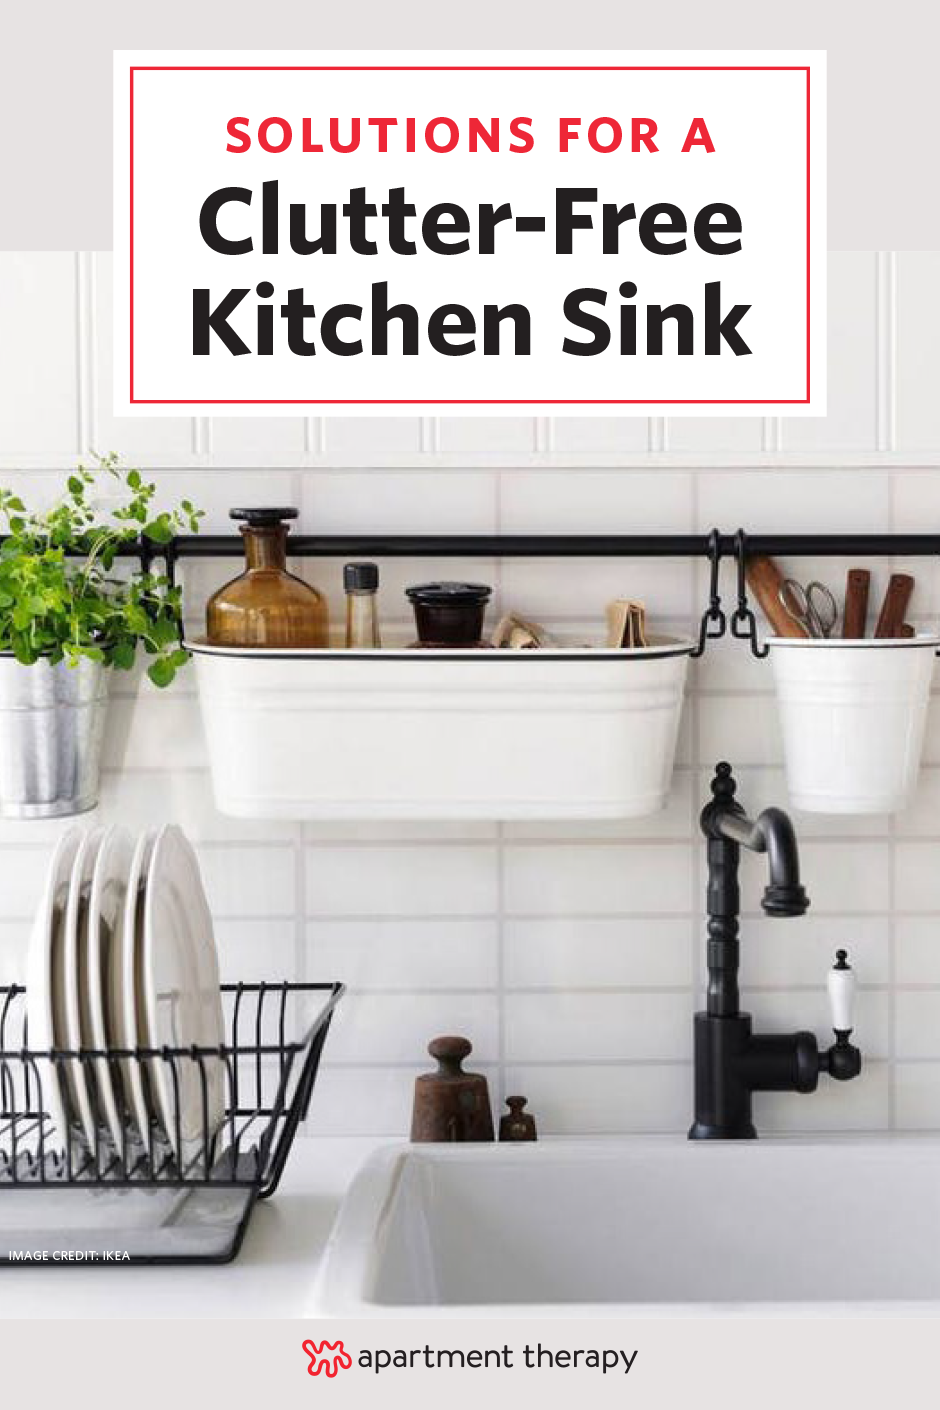 All it takes is some effort and imagination to transform a cramped kitchen area into a streamlined display never mind that youve got little more than a